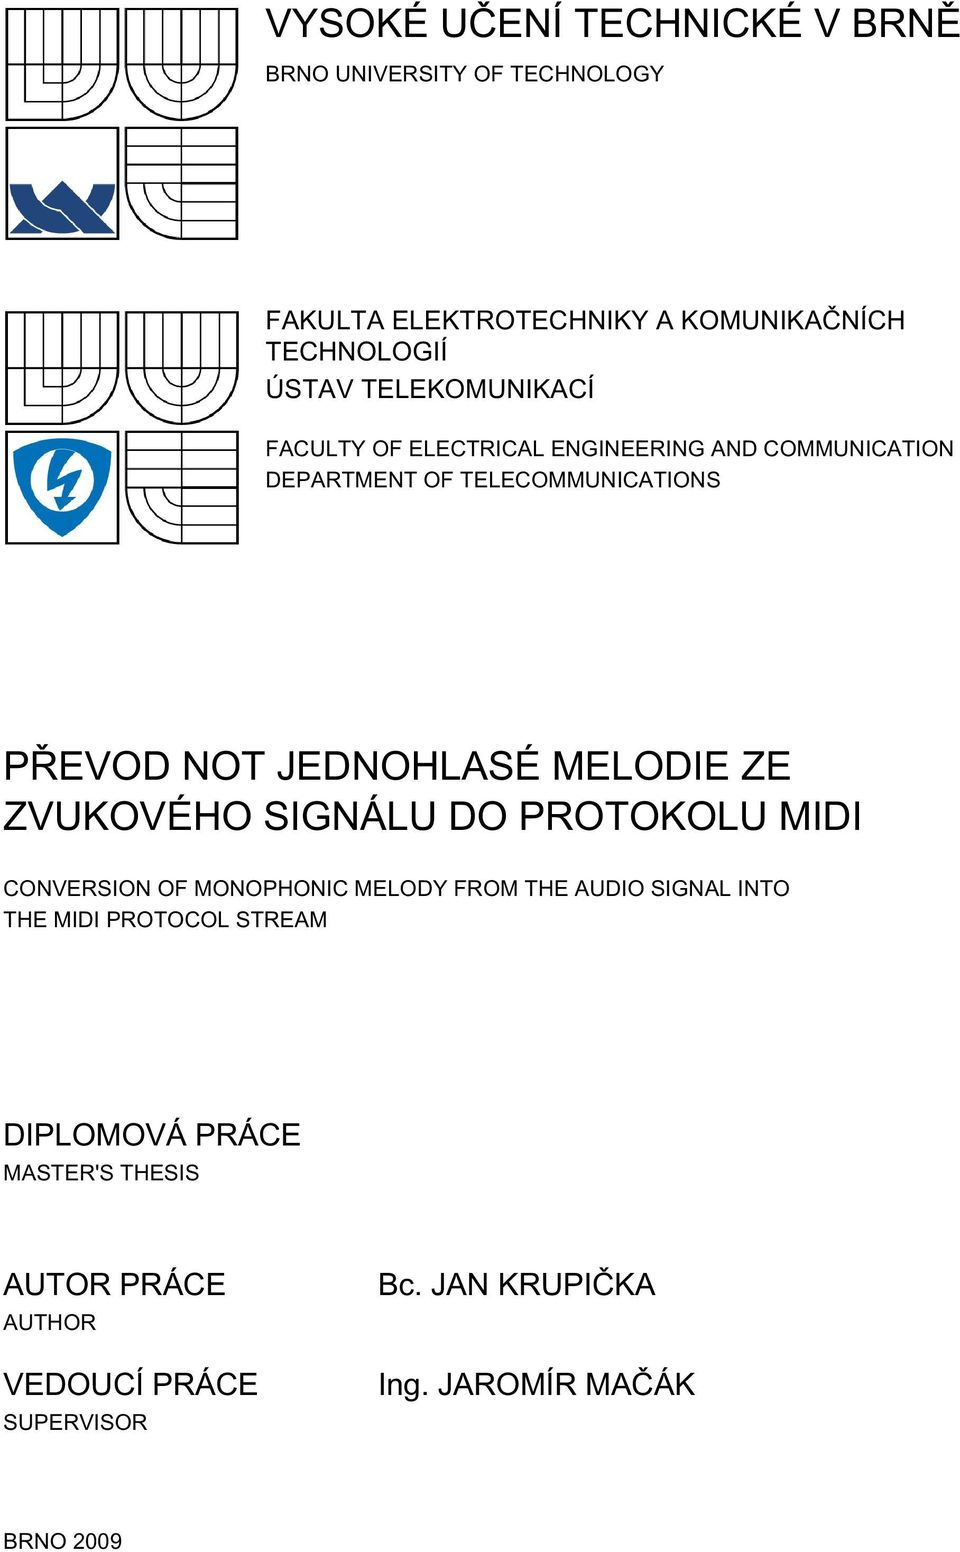 MELODIE ZE ZVUKOVÉHO SIGNÁLU DO PROTOKOLU MIDI CONVERSION OF MONOPHONIC MELODY FROM THE AUDIO SIGNAL INTO THE MIDI